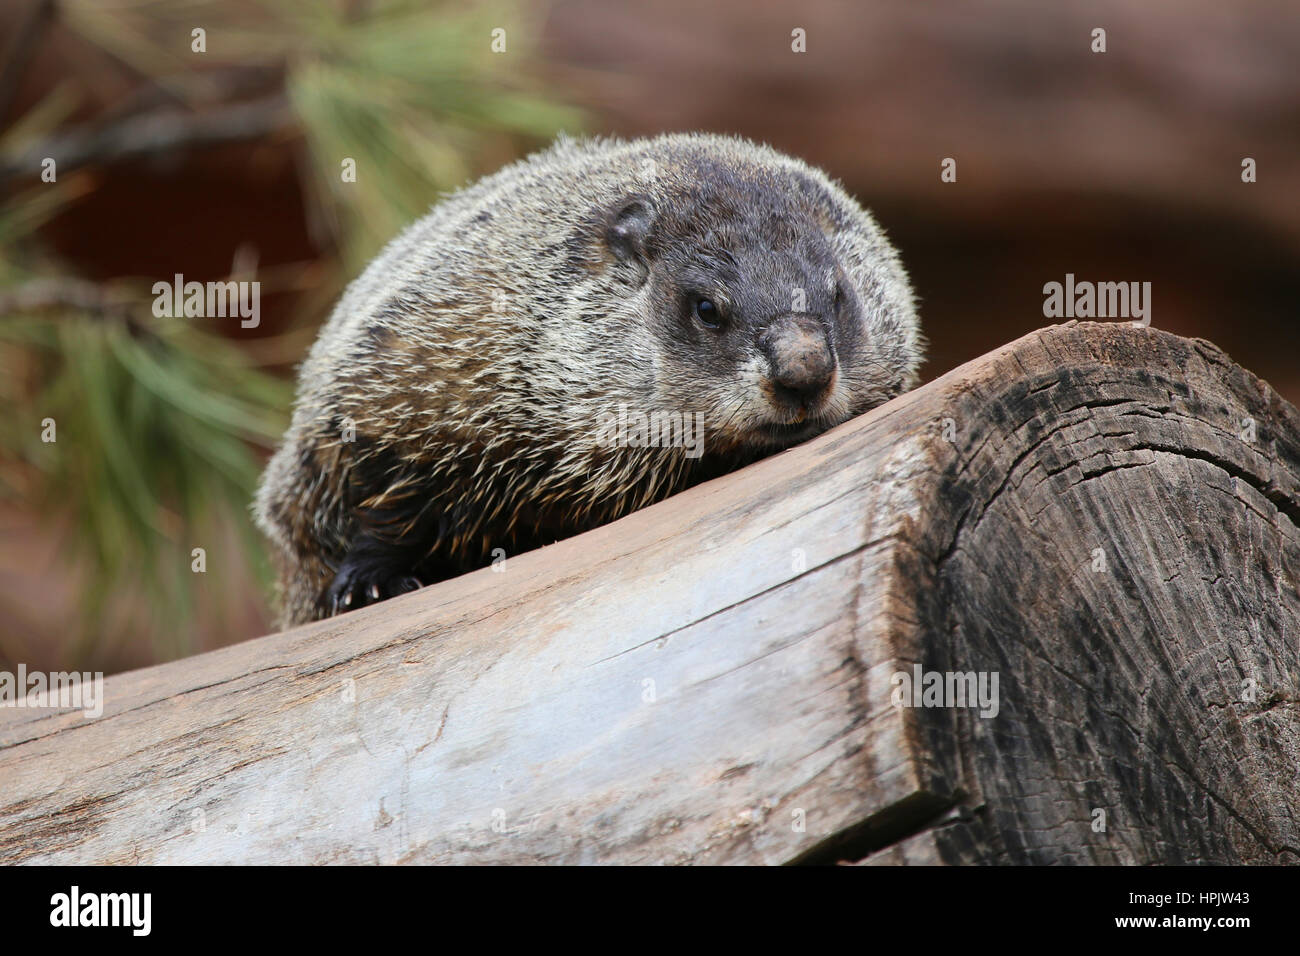 Wood Chuck Stock Photos & Wood Chuck Stock Images - Alamy